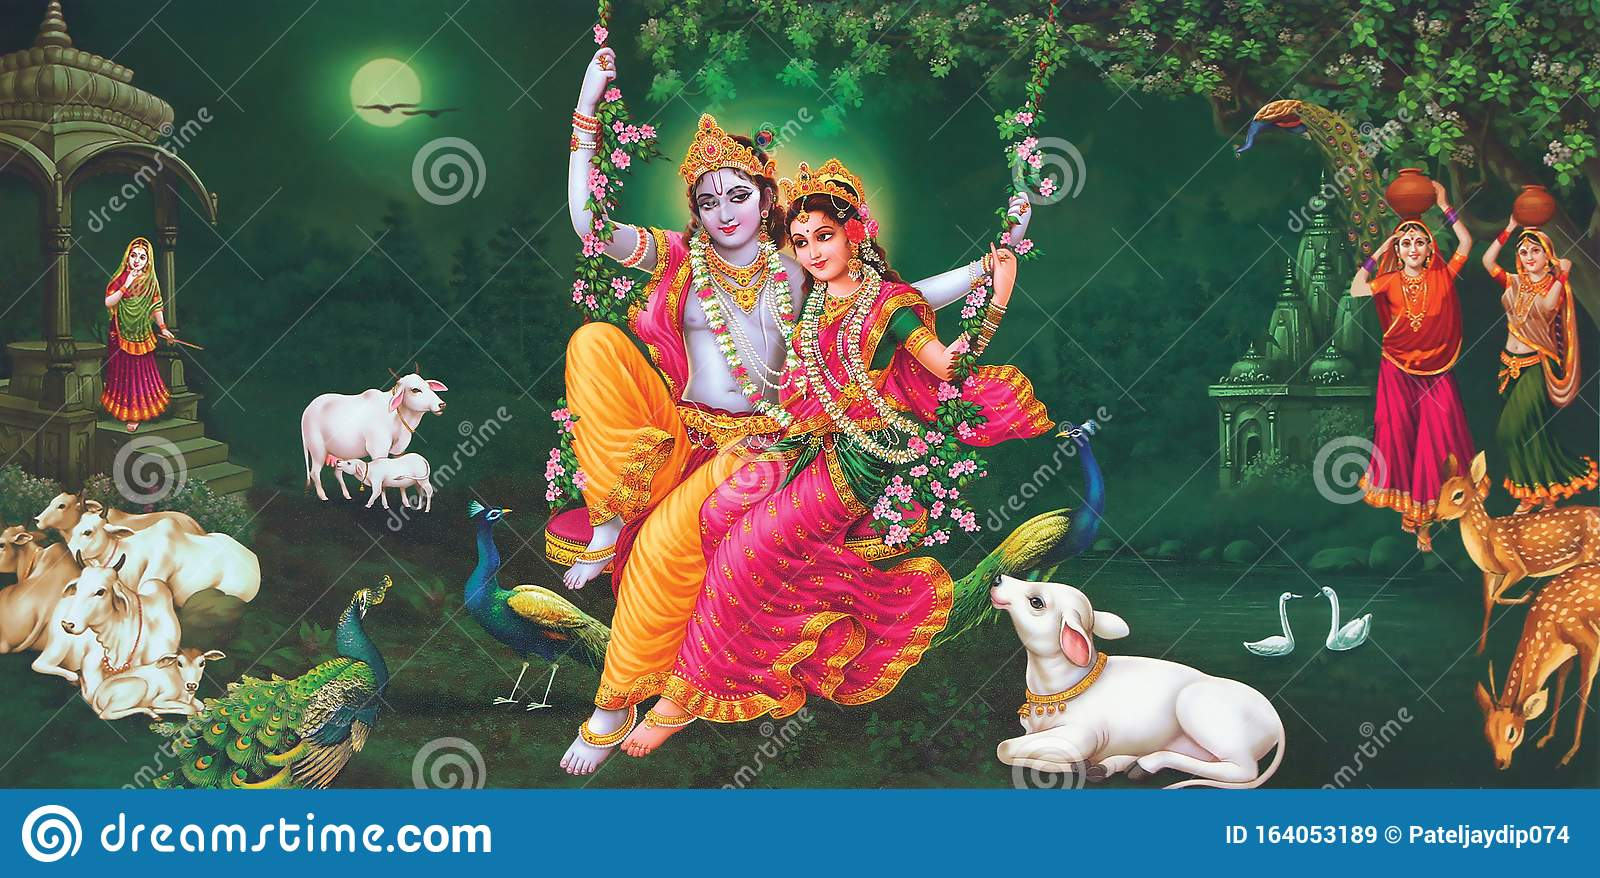 3 227 Lord Krishna Photos Free Royalty Free Stock Photos From Dreamstime